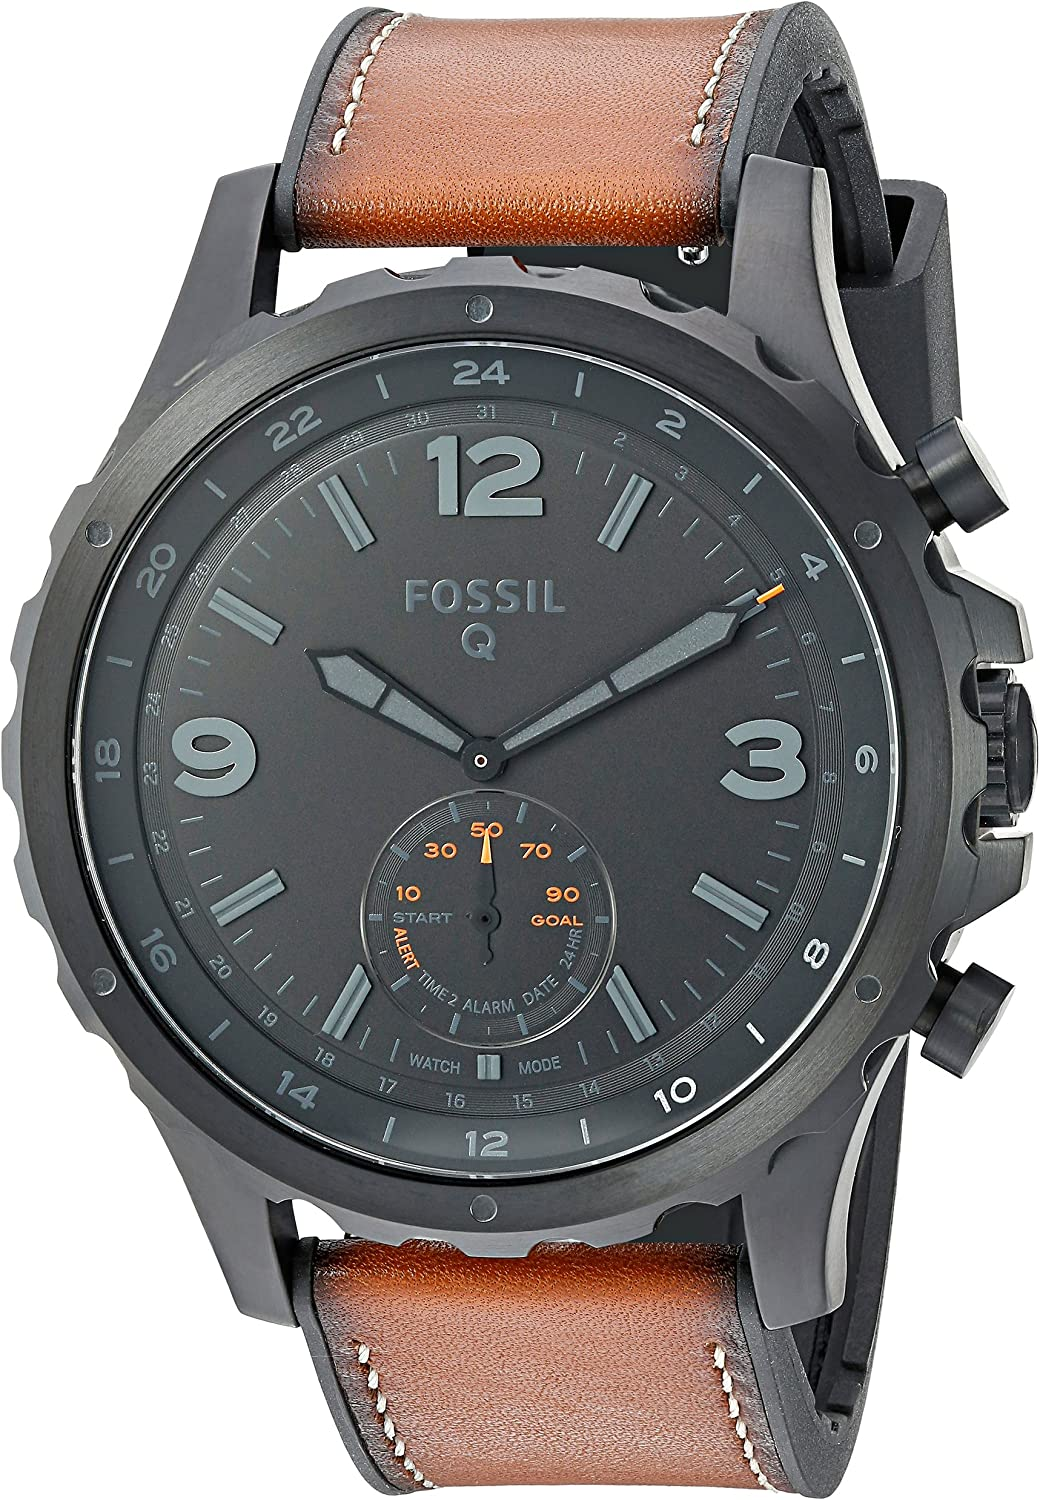 Fossil Mens Nate Stainless Steel Hybrid Smartwatch with Activity Tracking and Smartphone Notifications